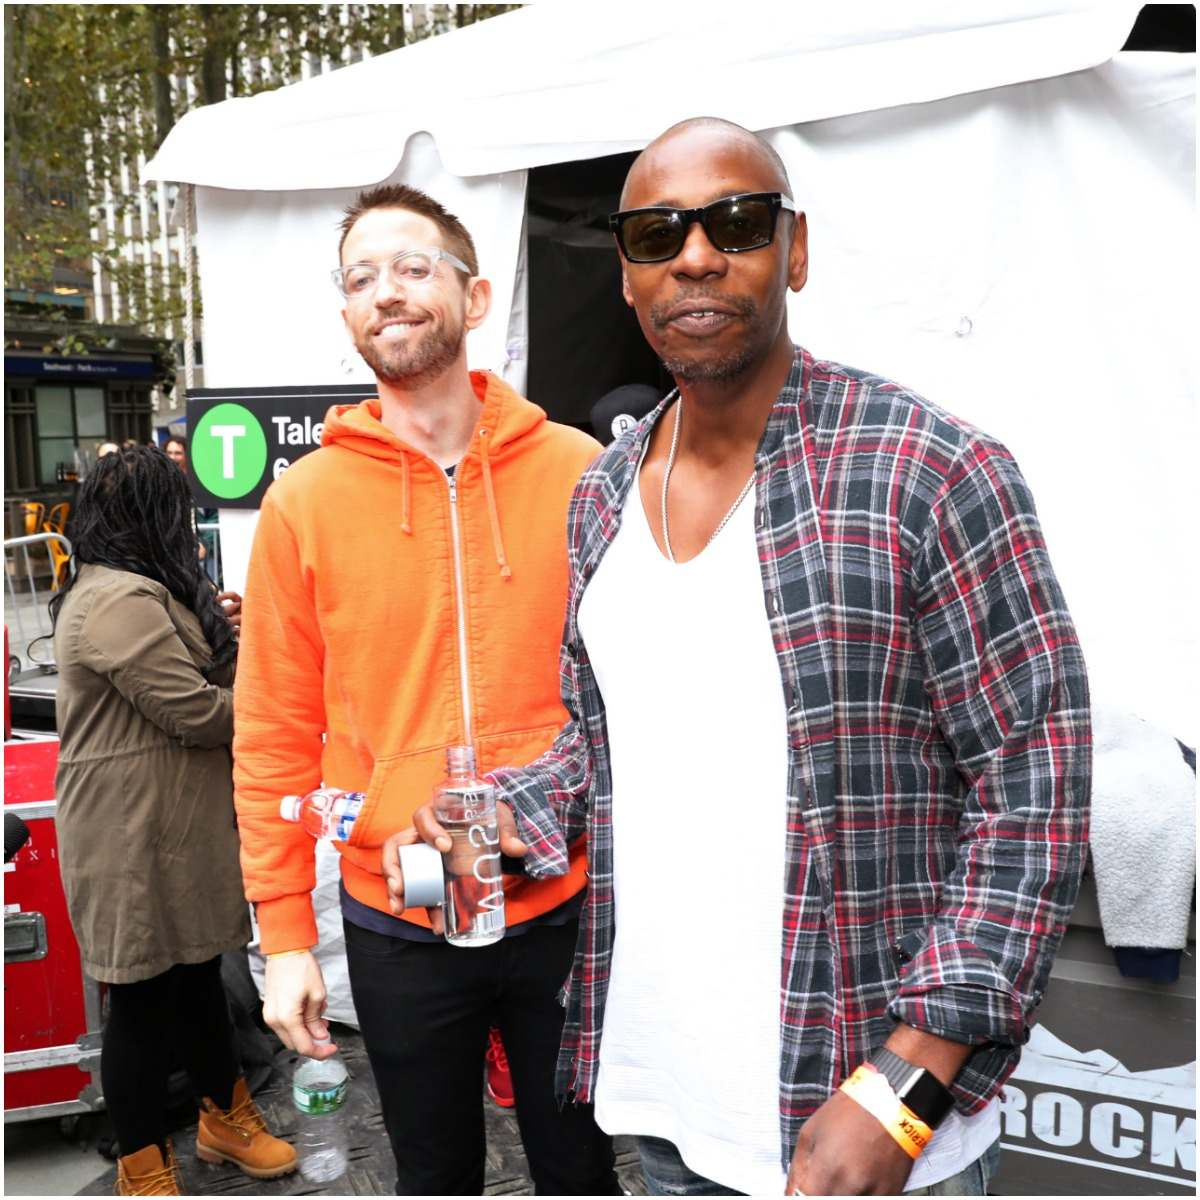 Neal Brennan with Dave Chappelle